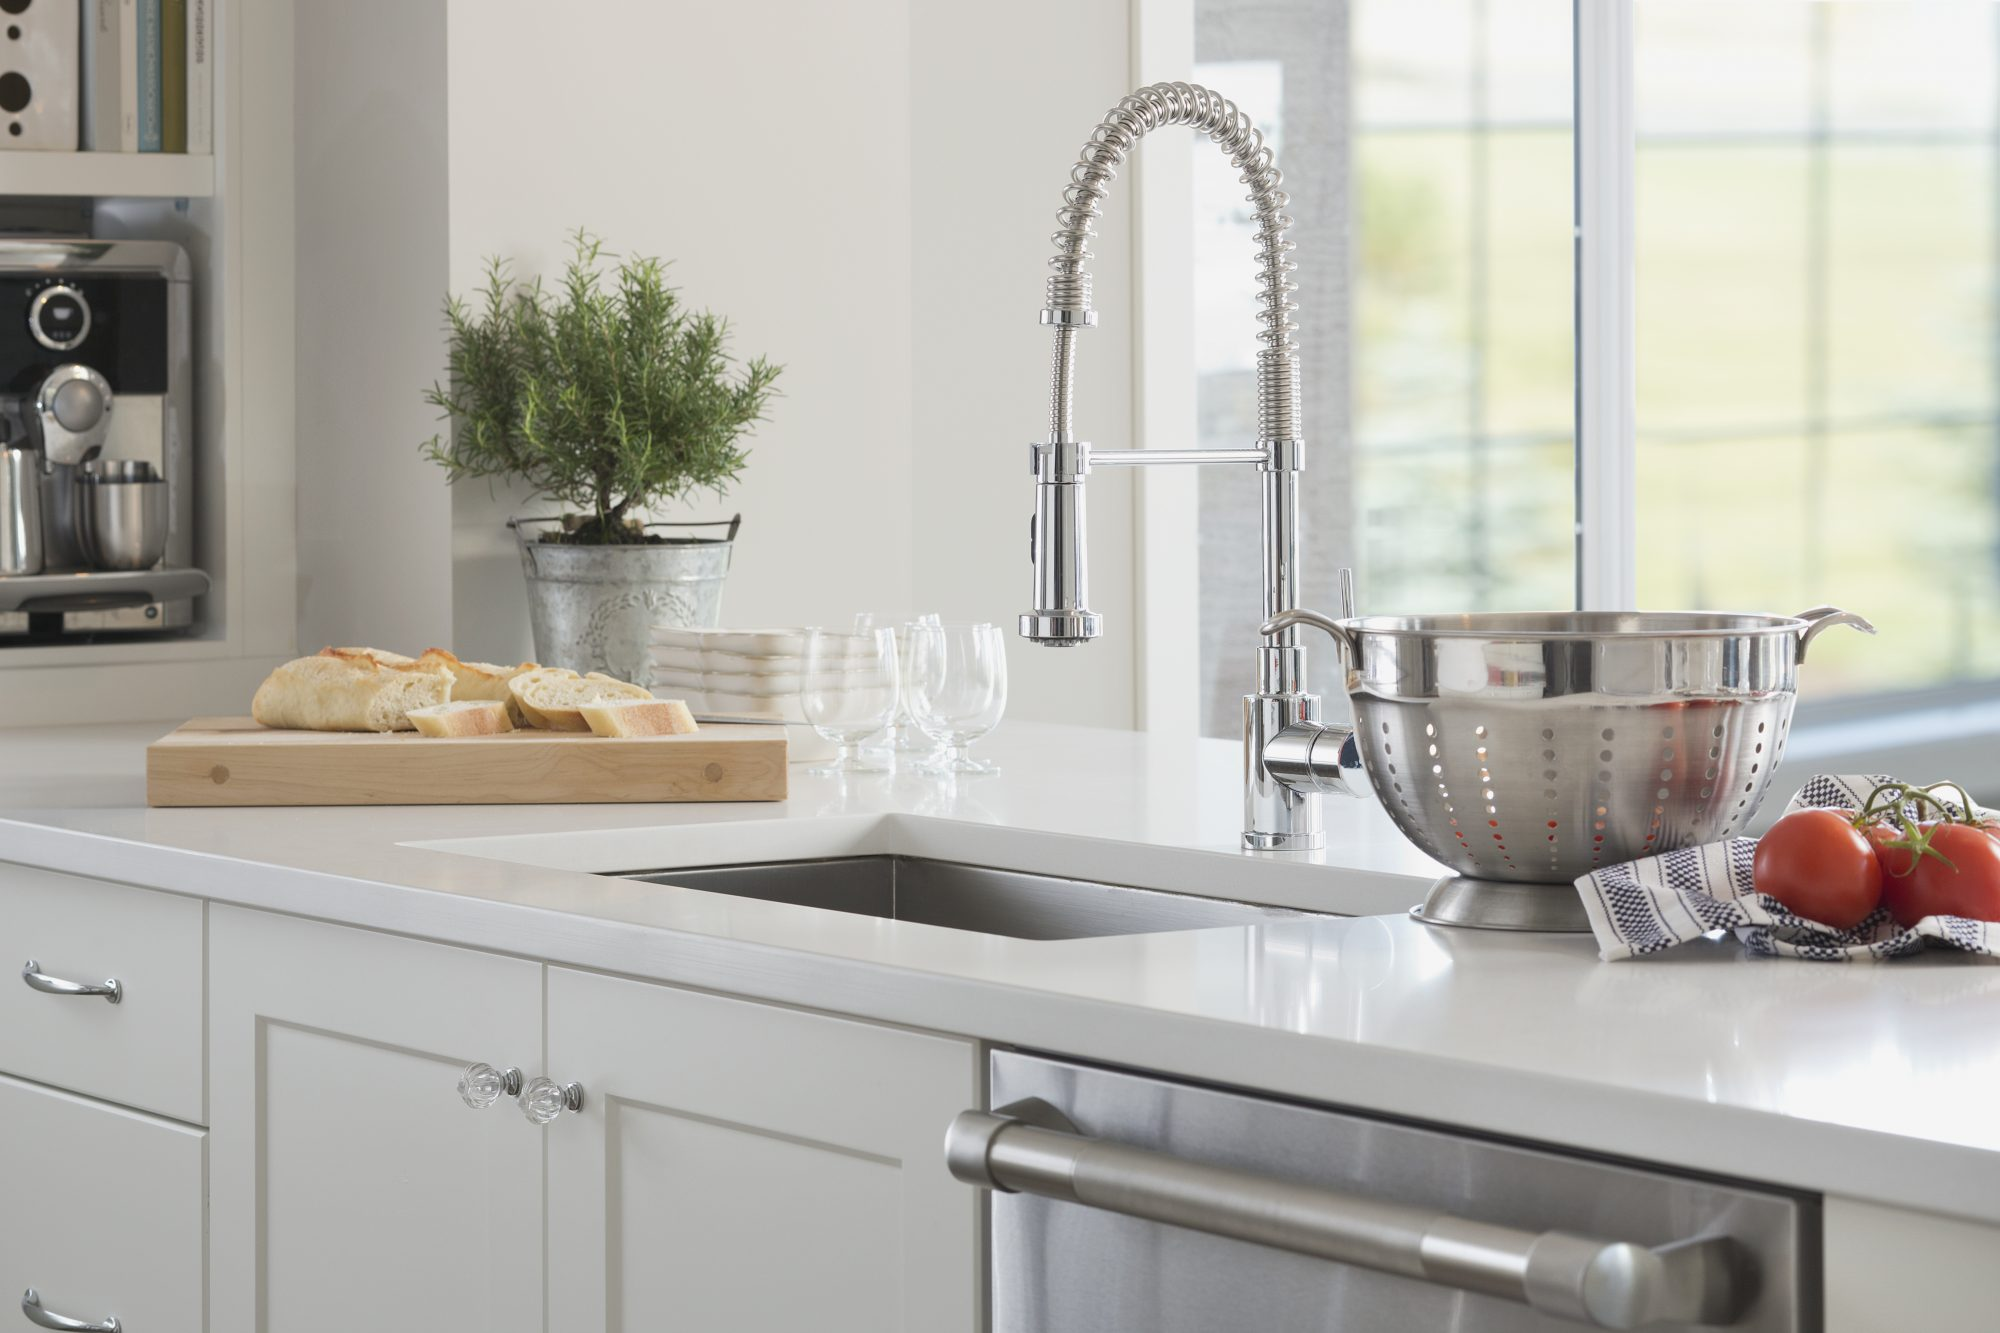 How To Clean Kitchen Sink Drain- Southern Living